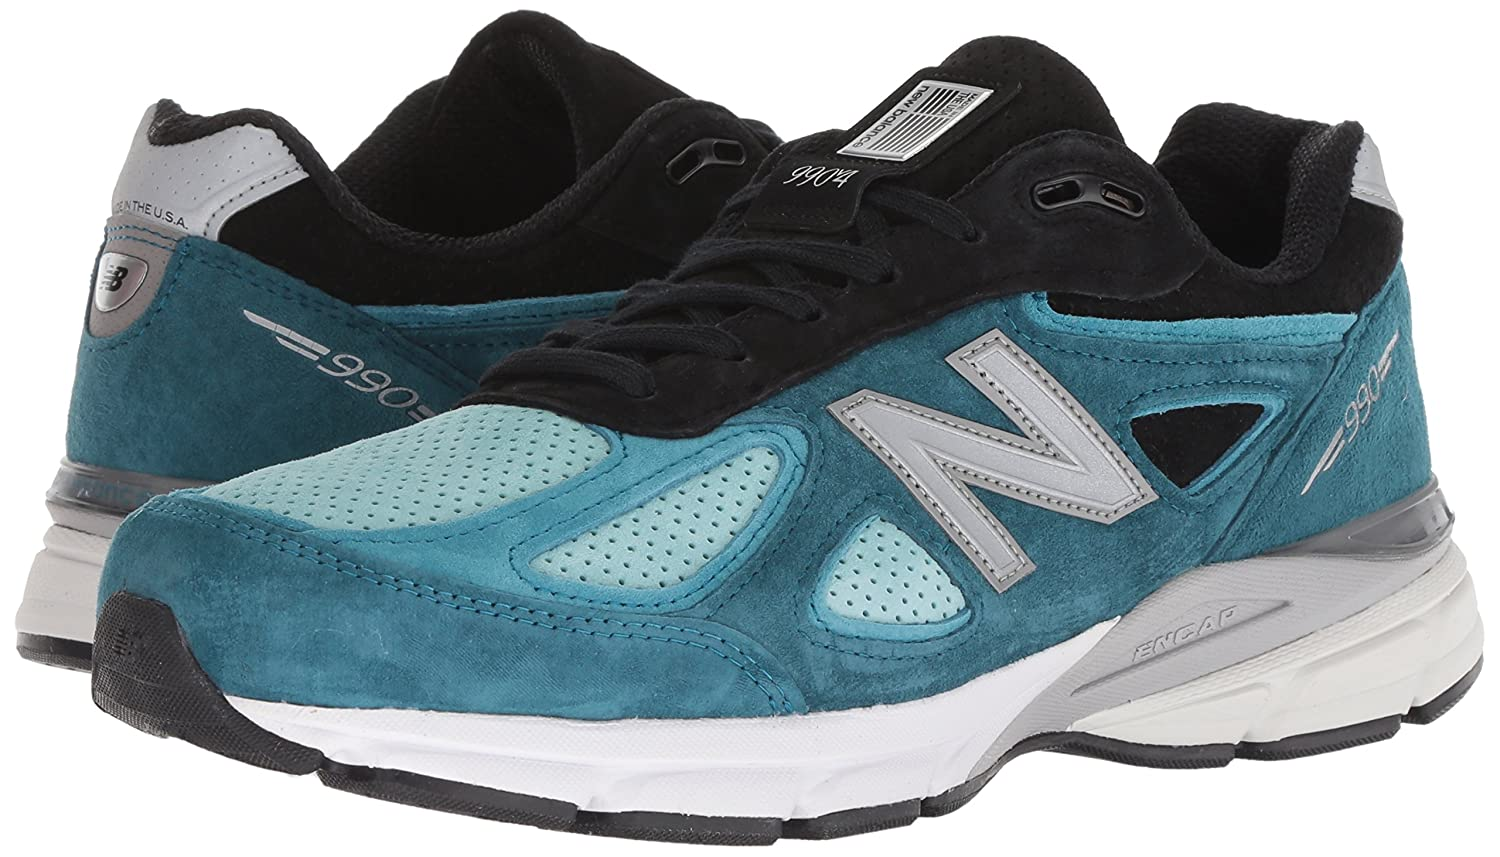 New-Balance-990-990v4-Classicc-Retro-Fashion-Sneaker-Made-in-USA thumbnail 37